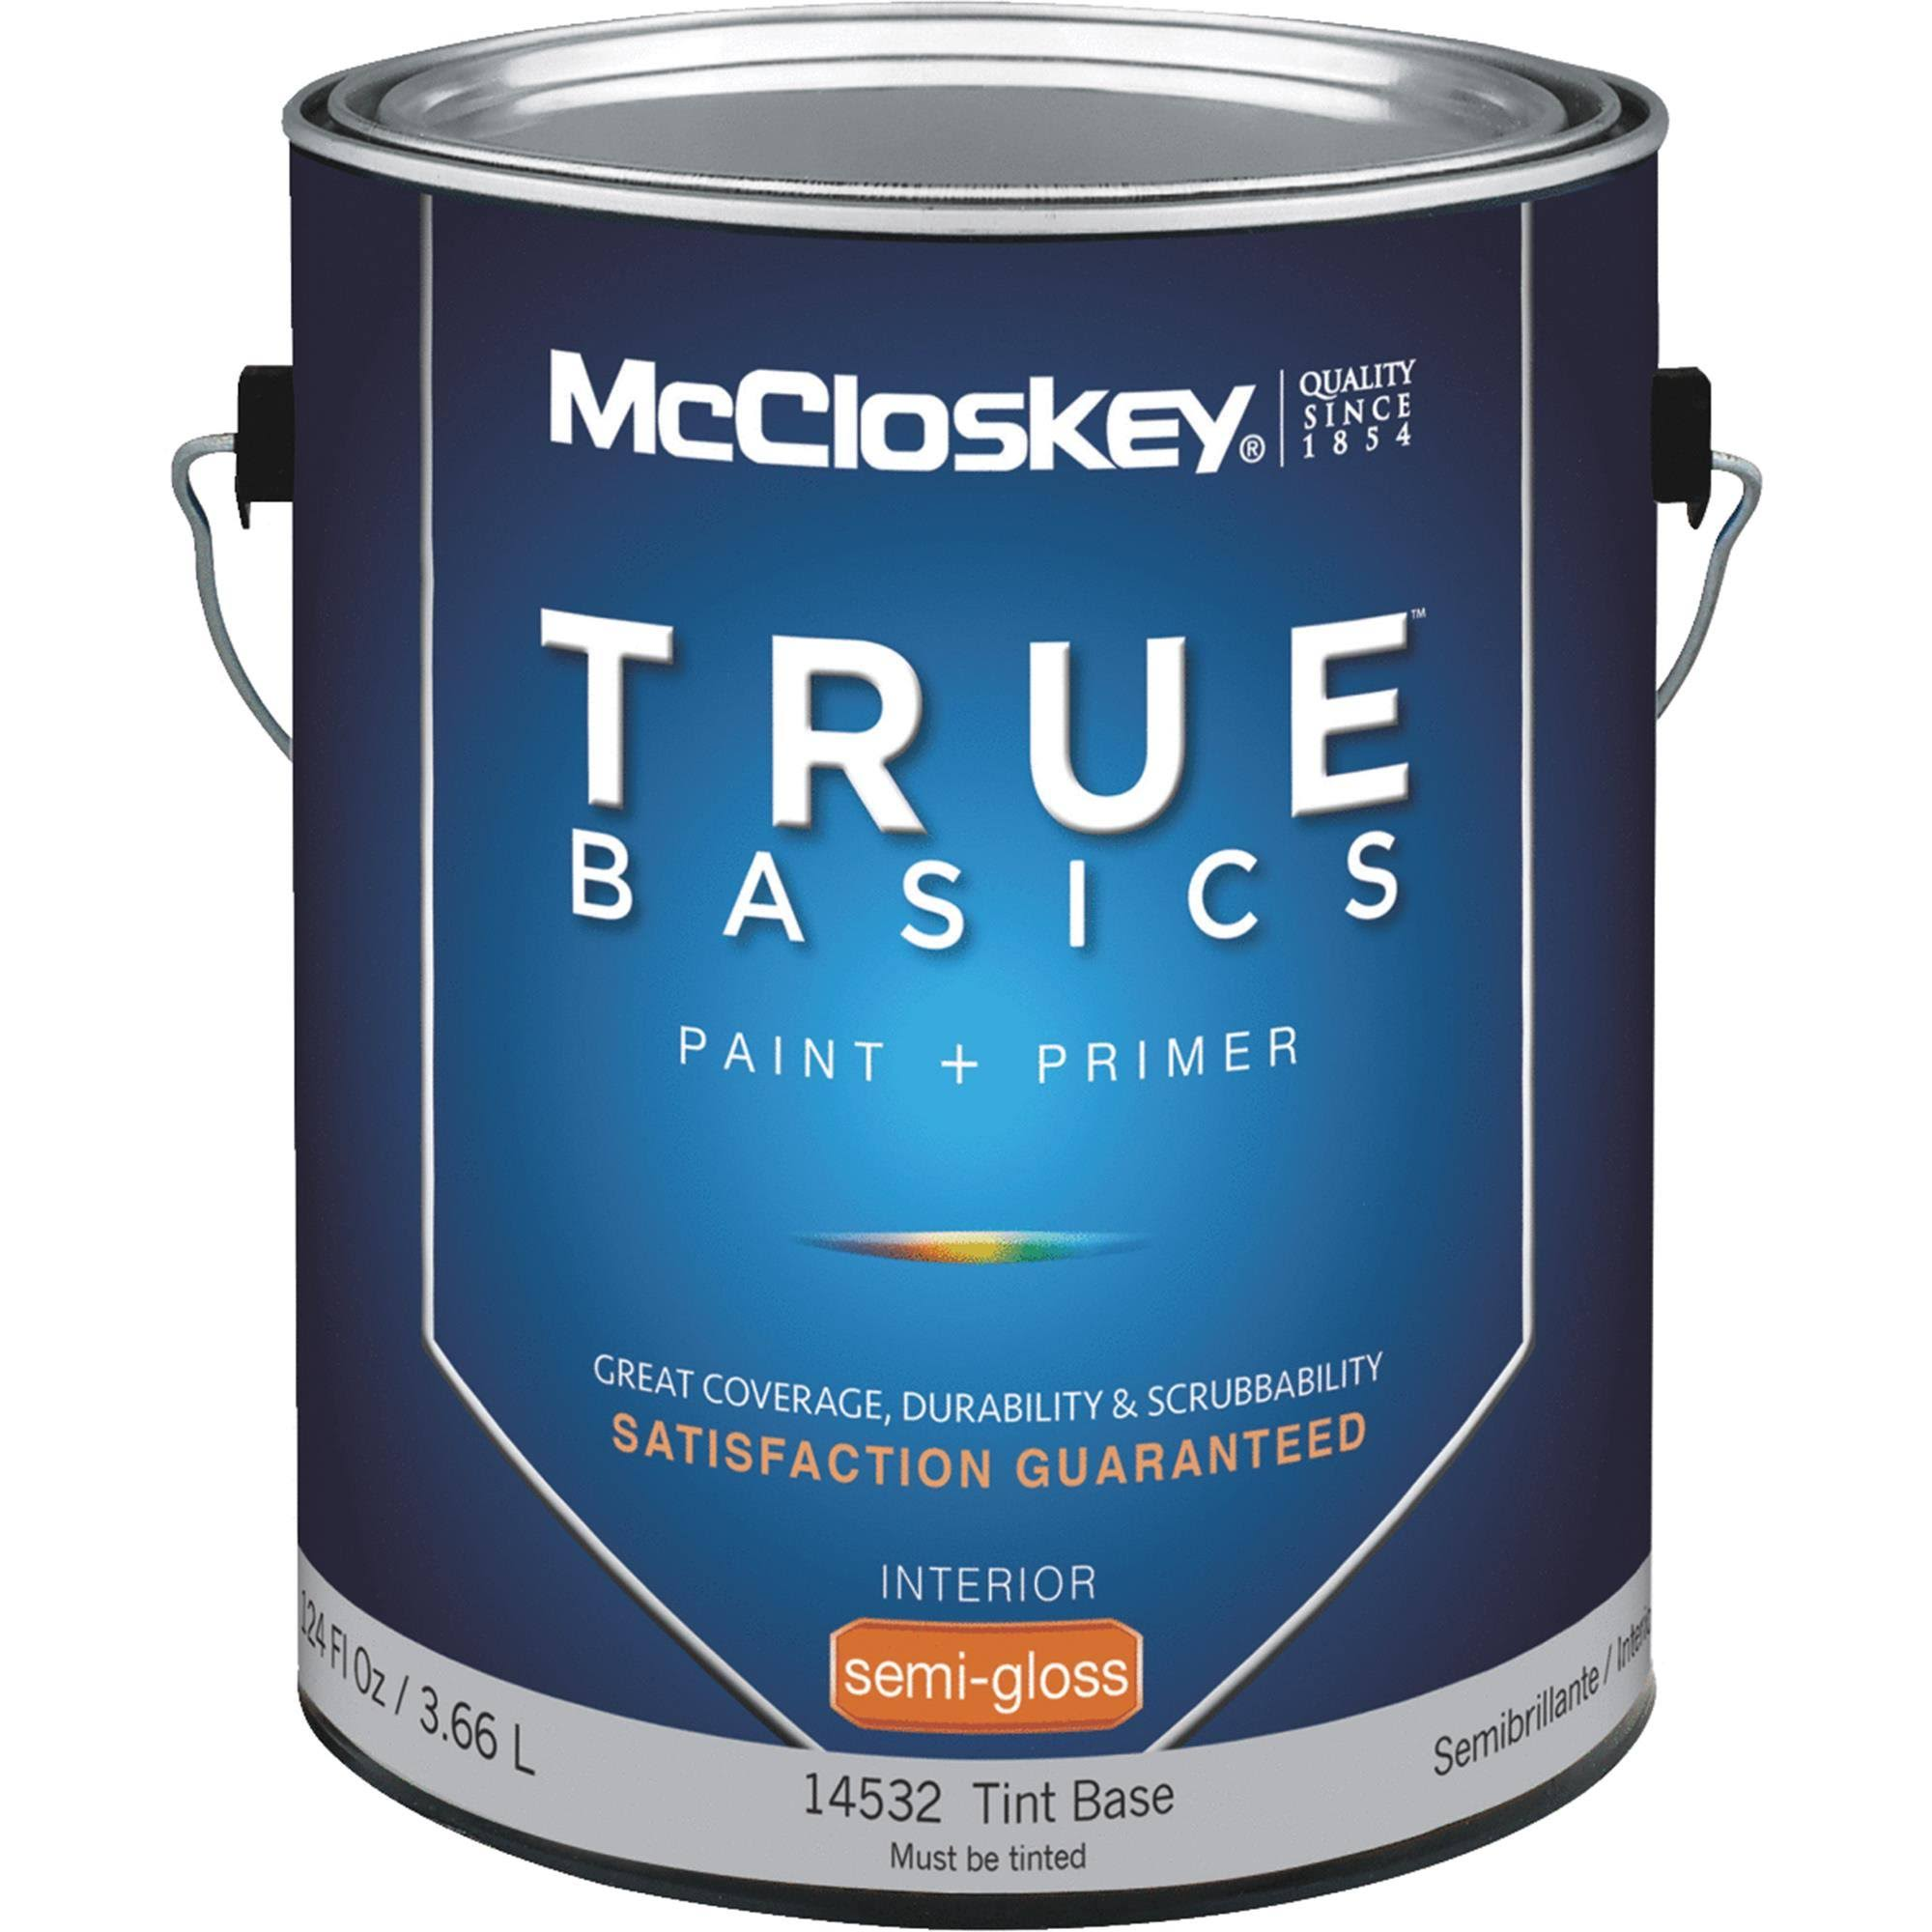 McCloskey True Basics Latex Paint & Primer Semi-Gloss Interior Wall Paint